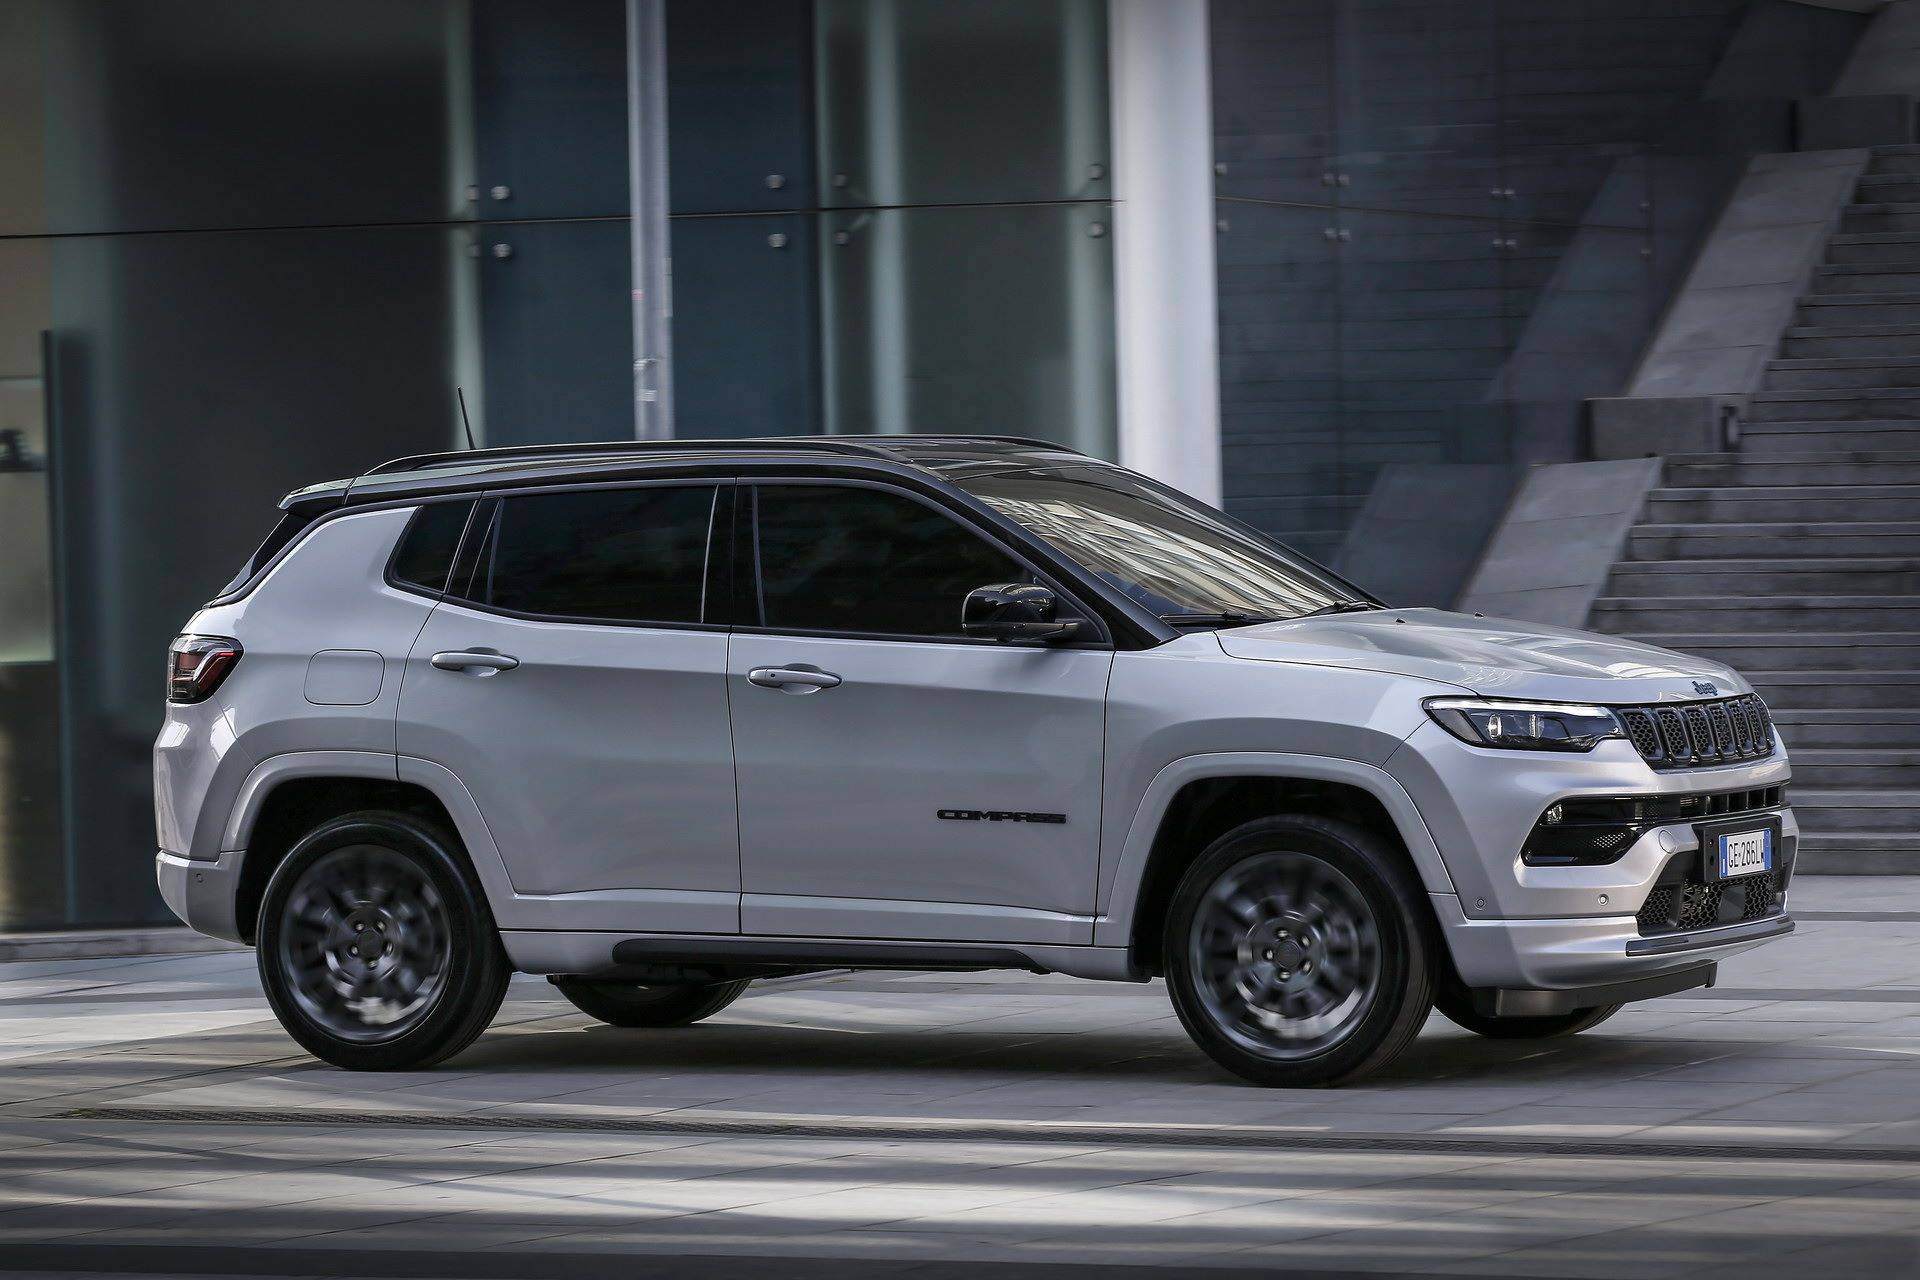 Jeep-Compass-facelift-2021-31